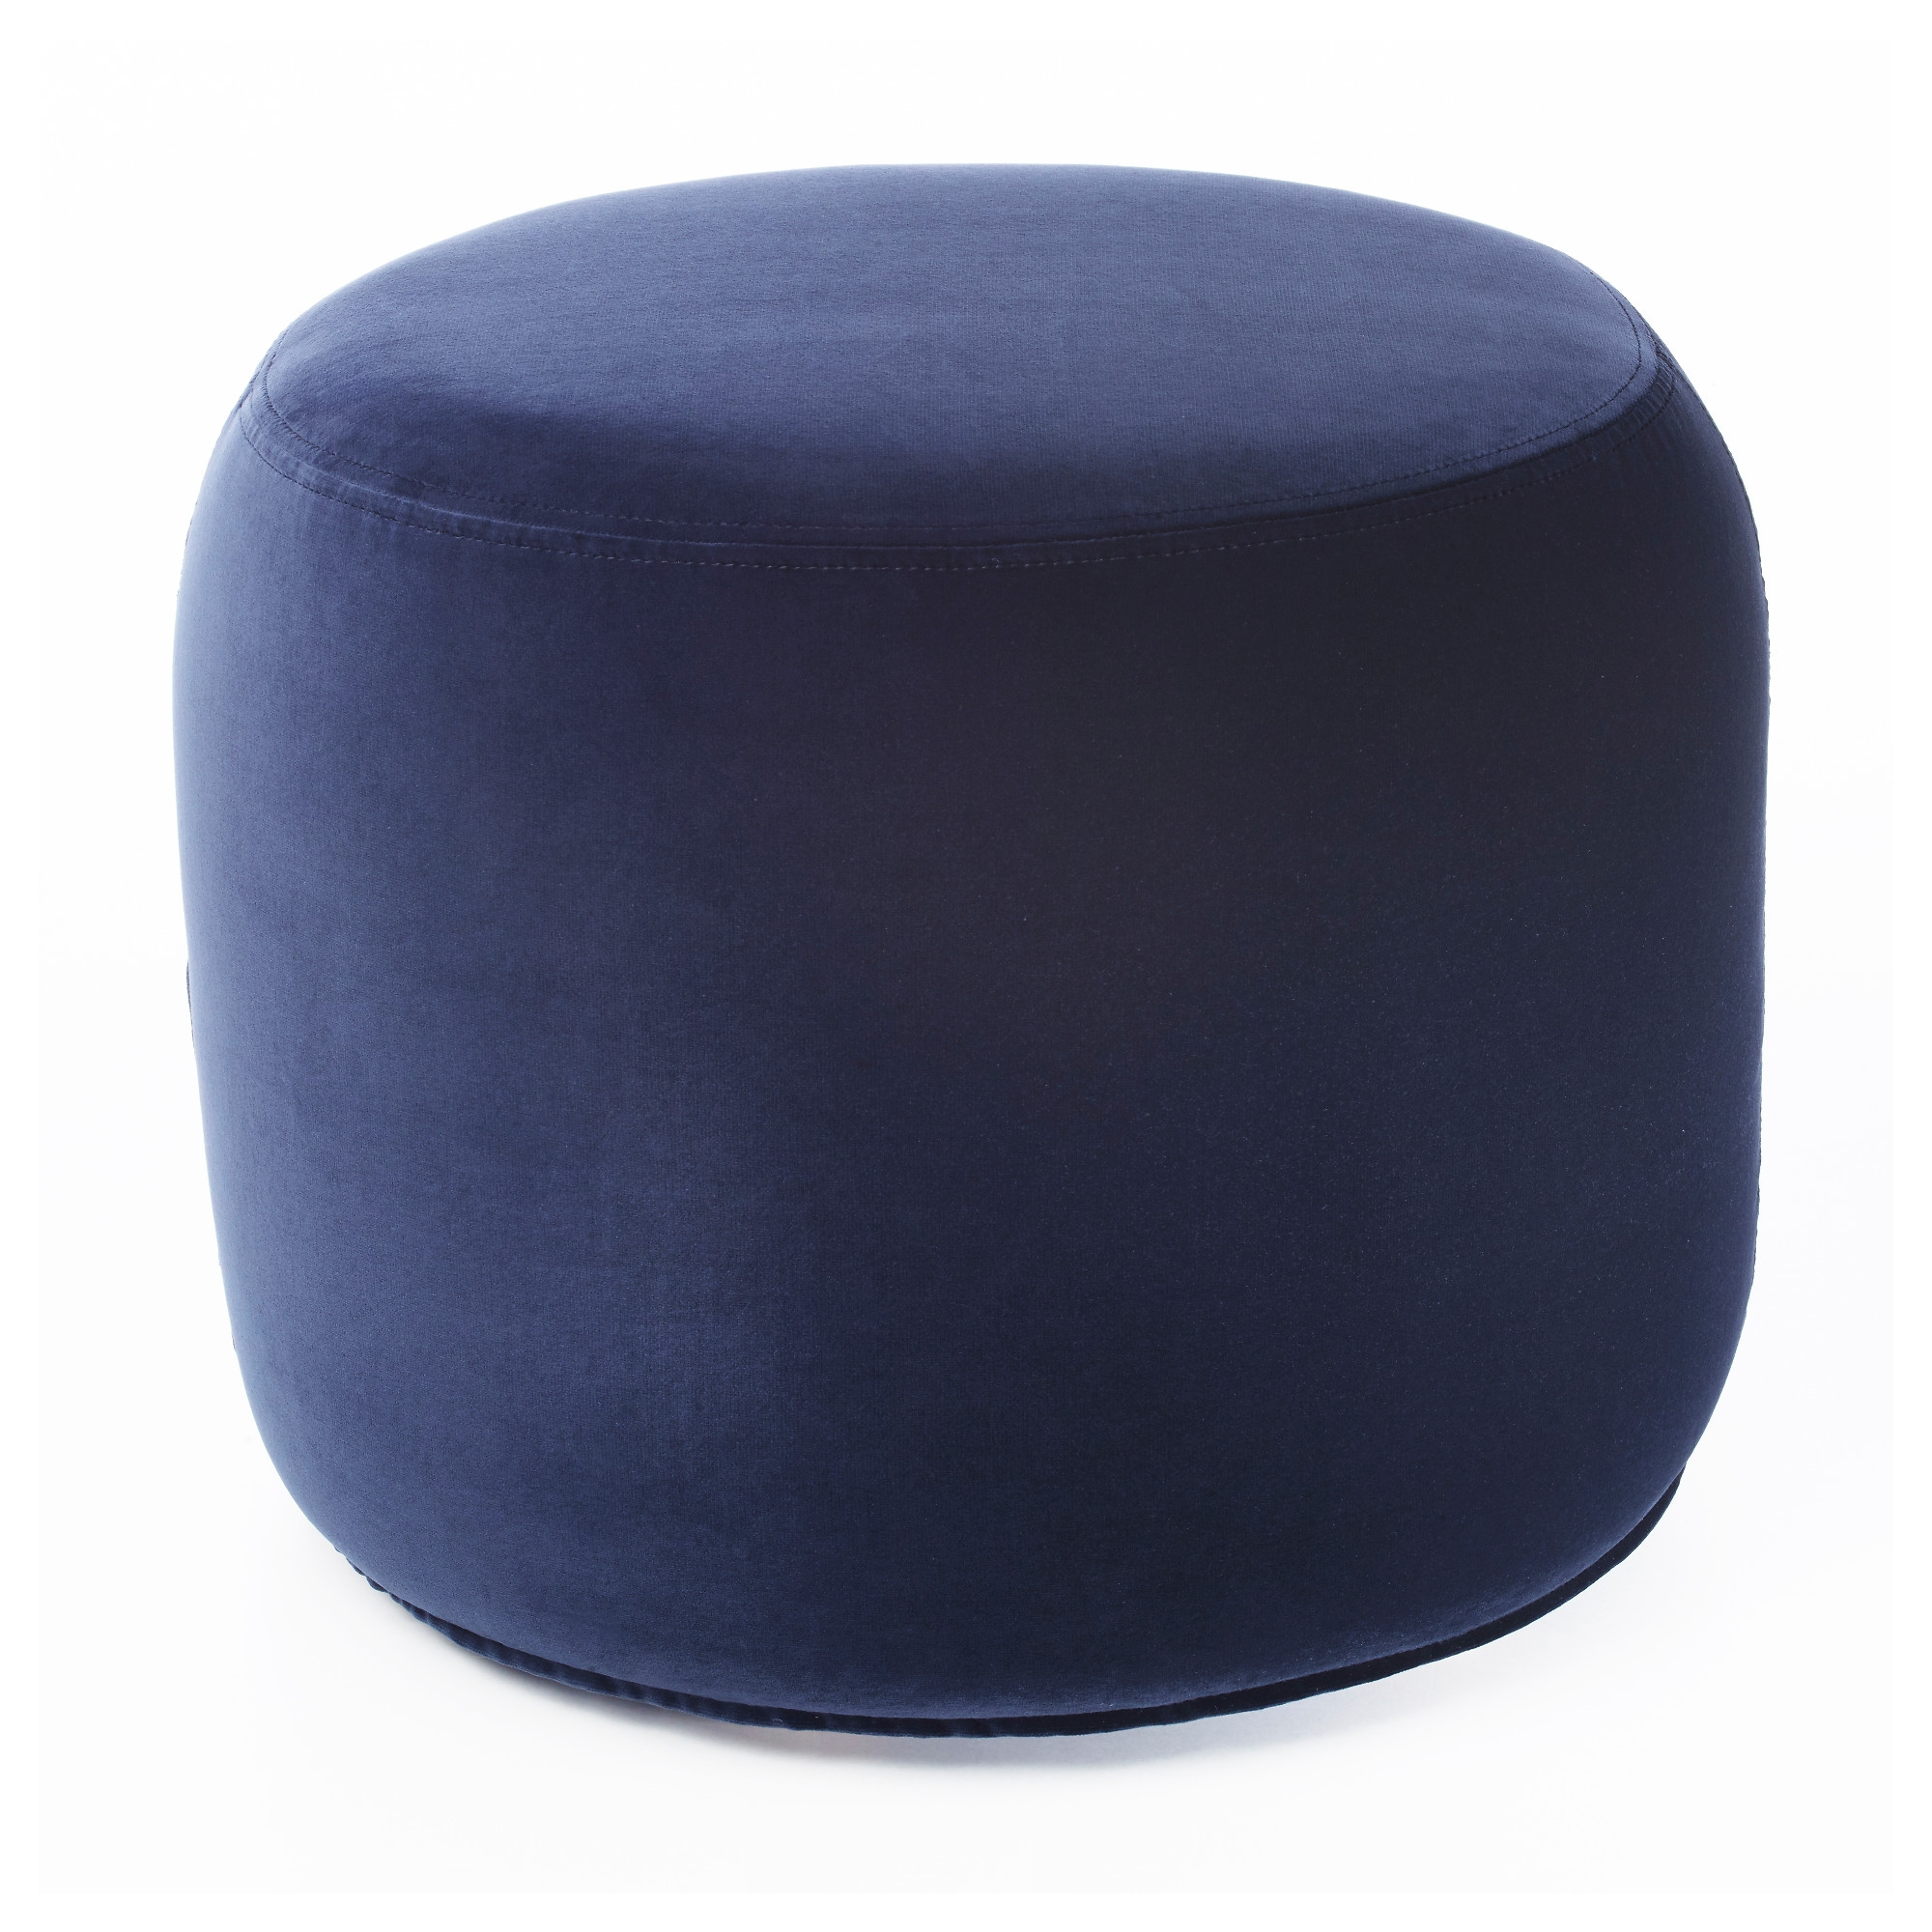 Footstools Ottomans Pouffes Ikea In Ikea Footstools And Pouffes (Image 5 of 15)